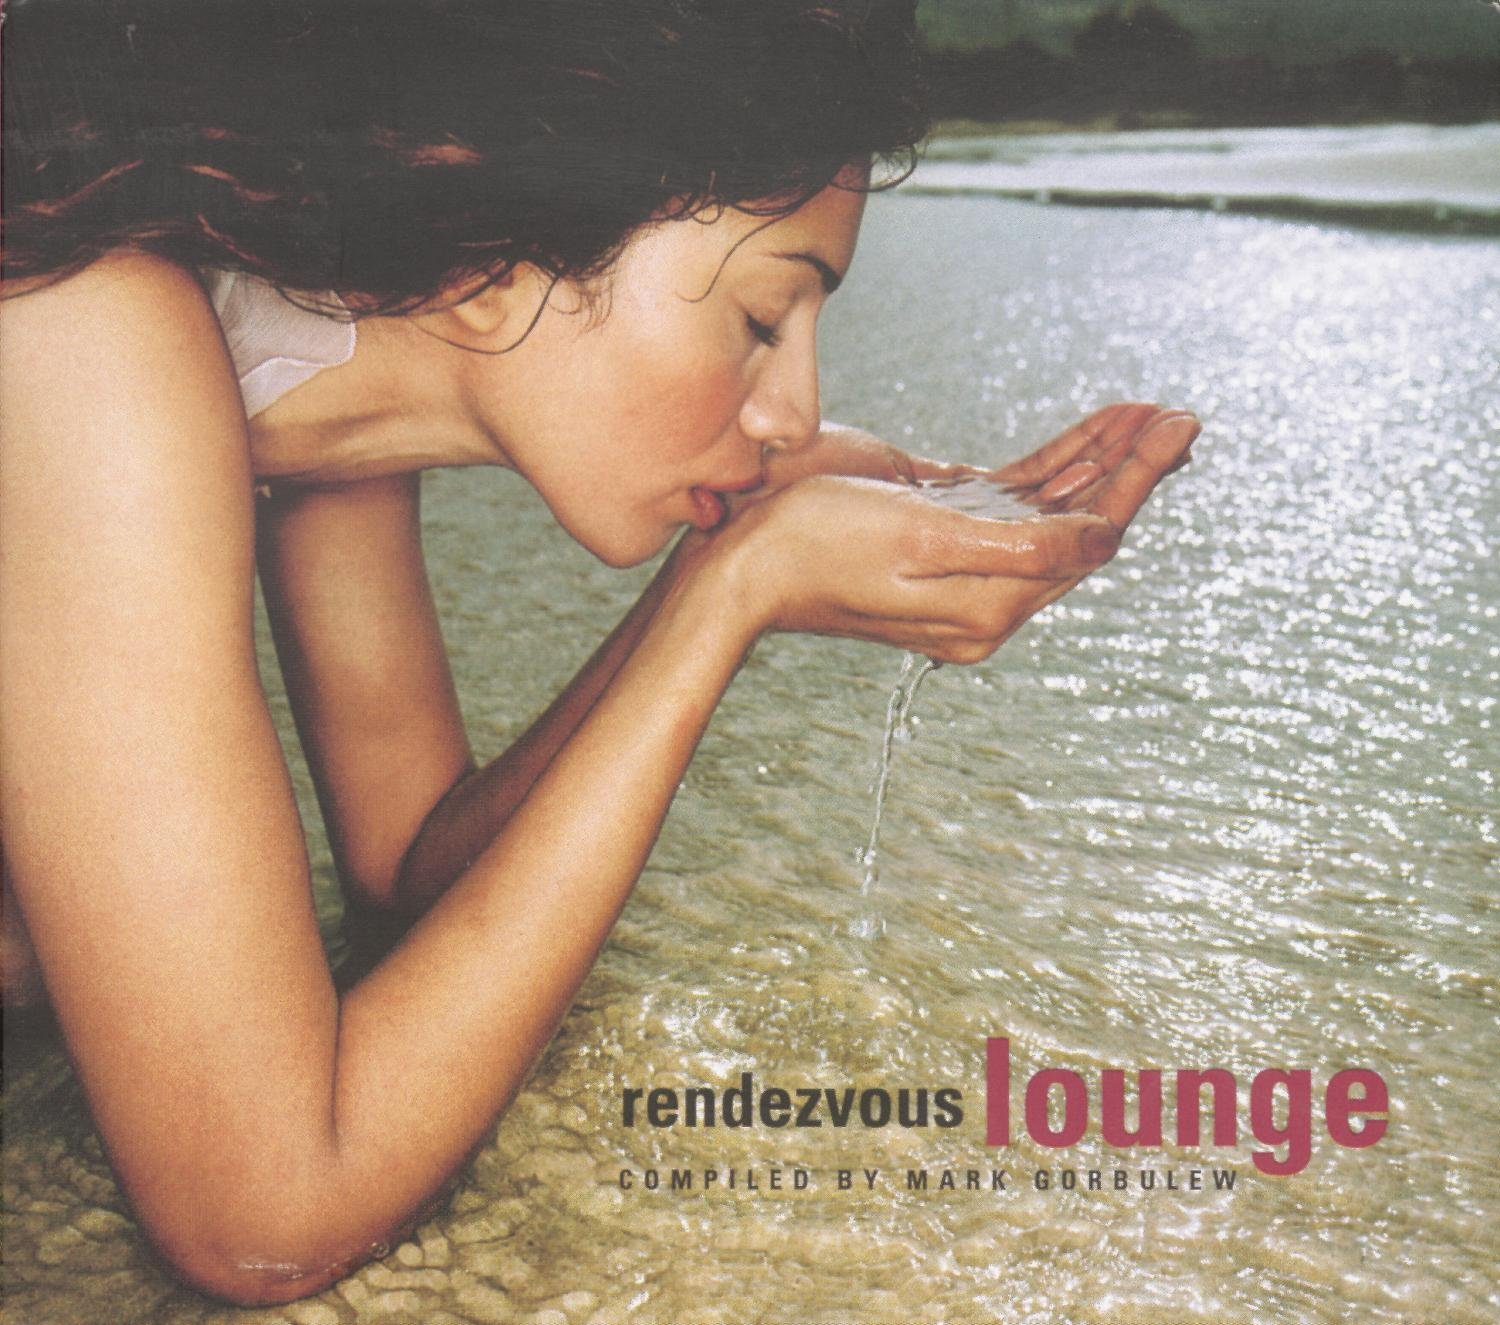 Rendezvous Lounge compiled by Mark Gorbulew